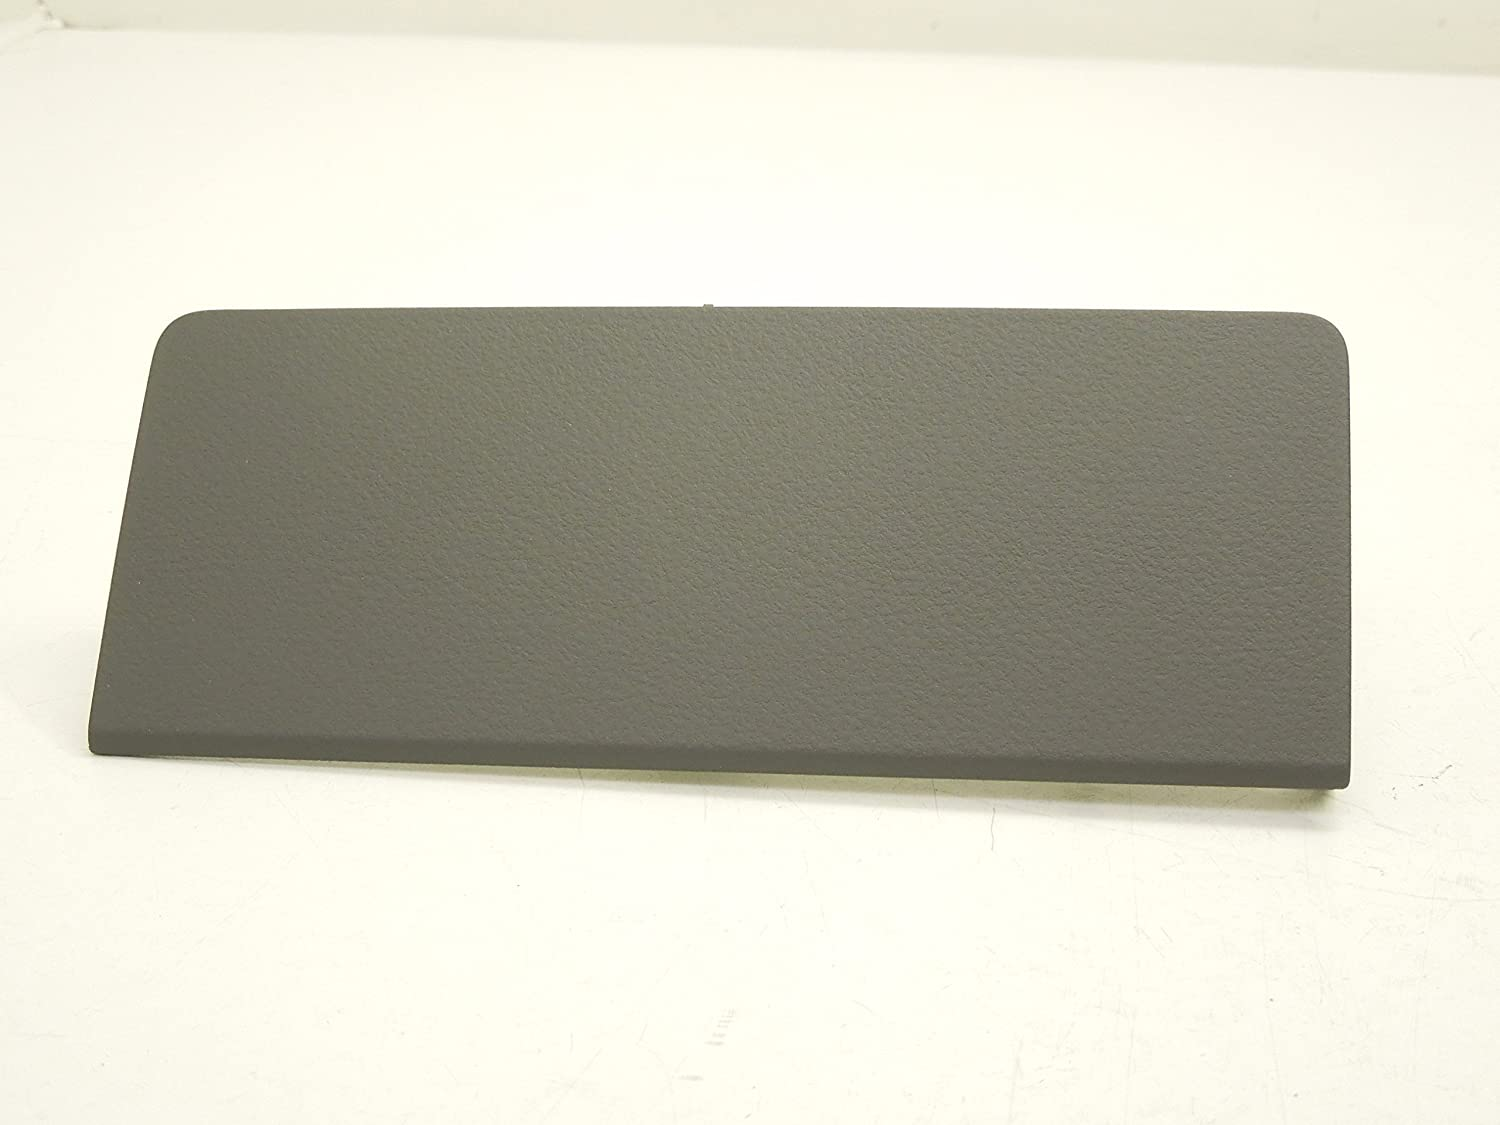 Audi A2 8Z LHD Dark Grey Fuse Box Cover Lid Access Panel New